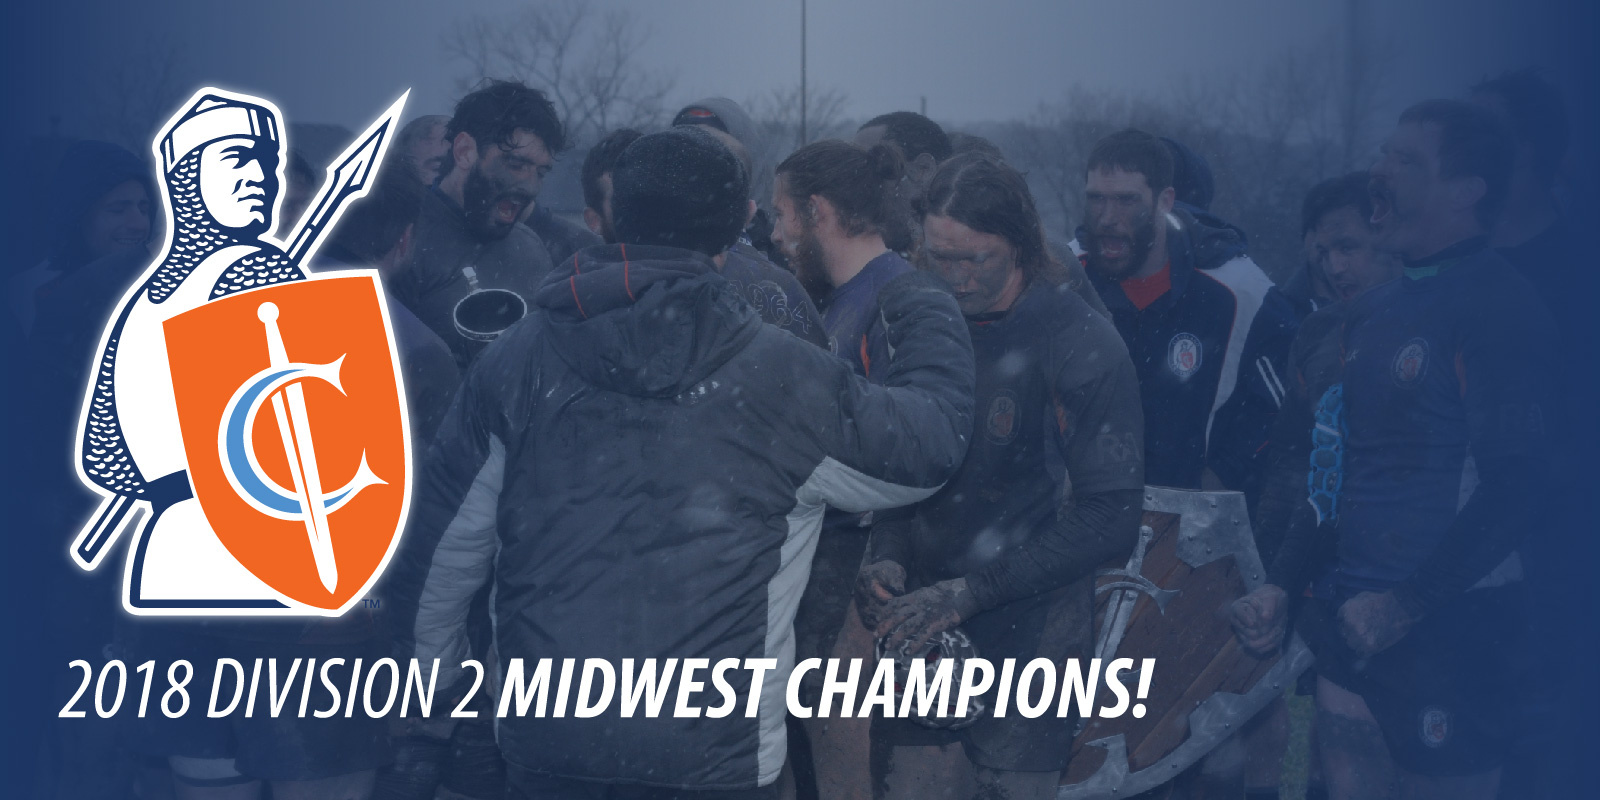 Midwest Champions!  Match Recap: 11-17-18 Cleveland Crusaders D2 vs Wisconsin Rugby D2